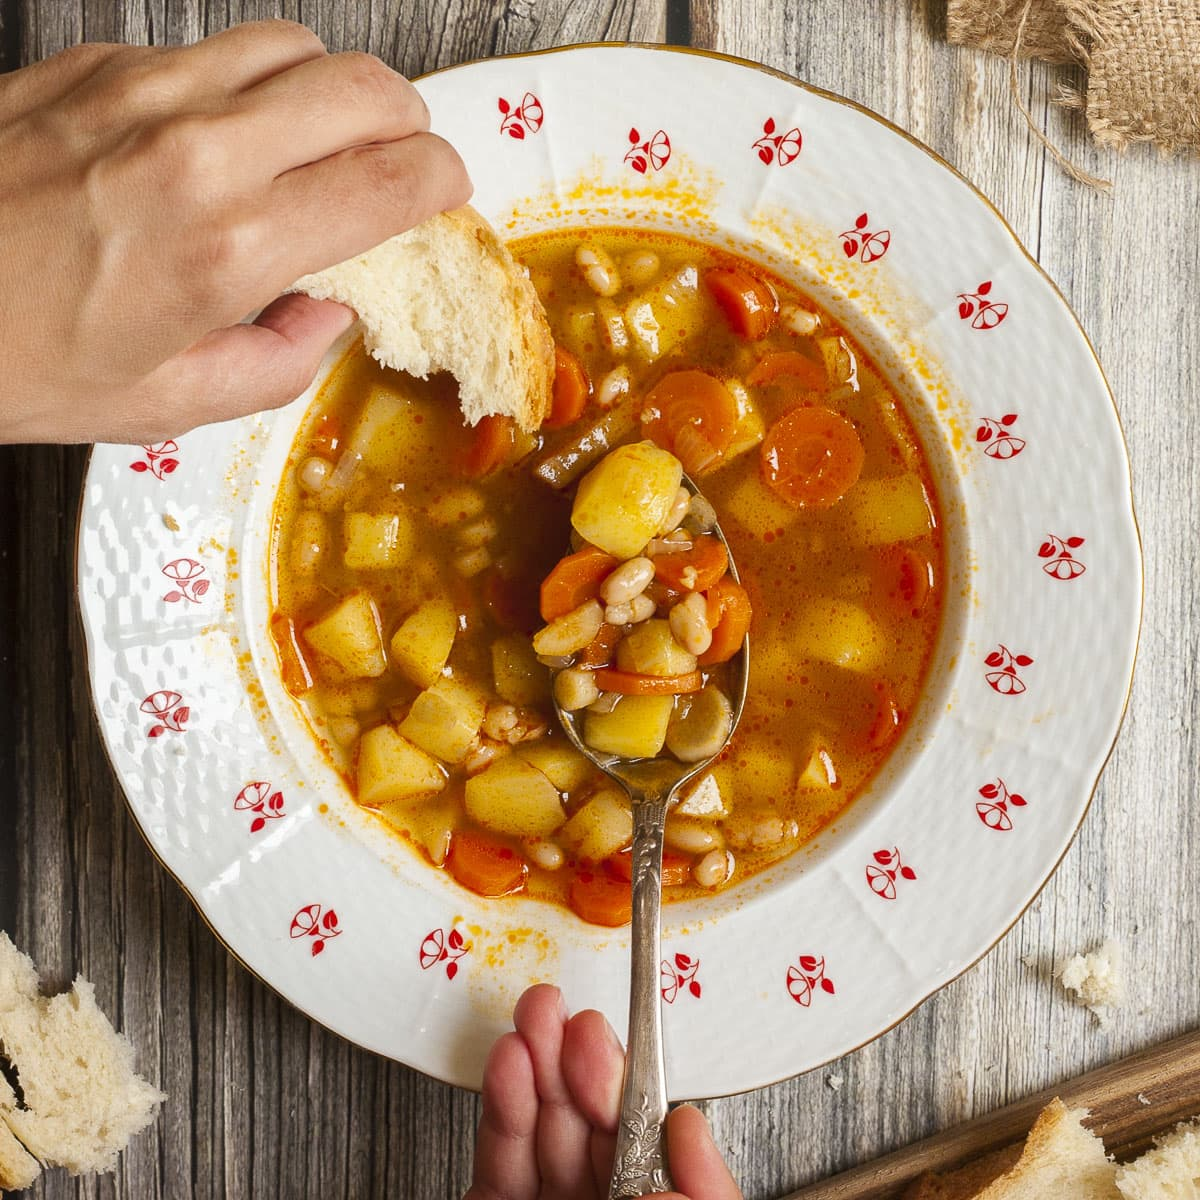 Vegetarian Hungarian Goulash Soup in a white bowl with Hungarian patterns. A hand is taking a spoonful and dunks a bread slice